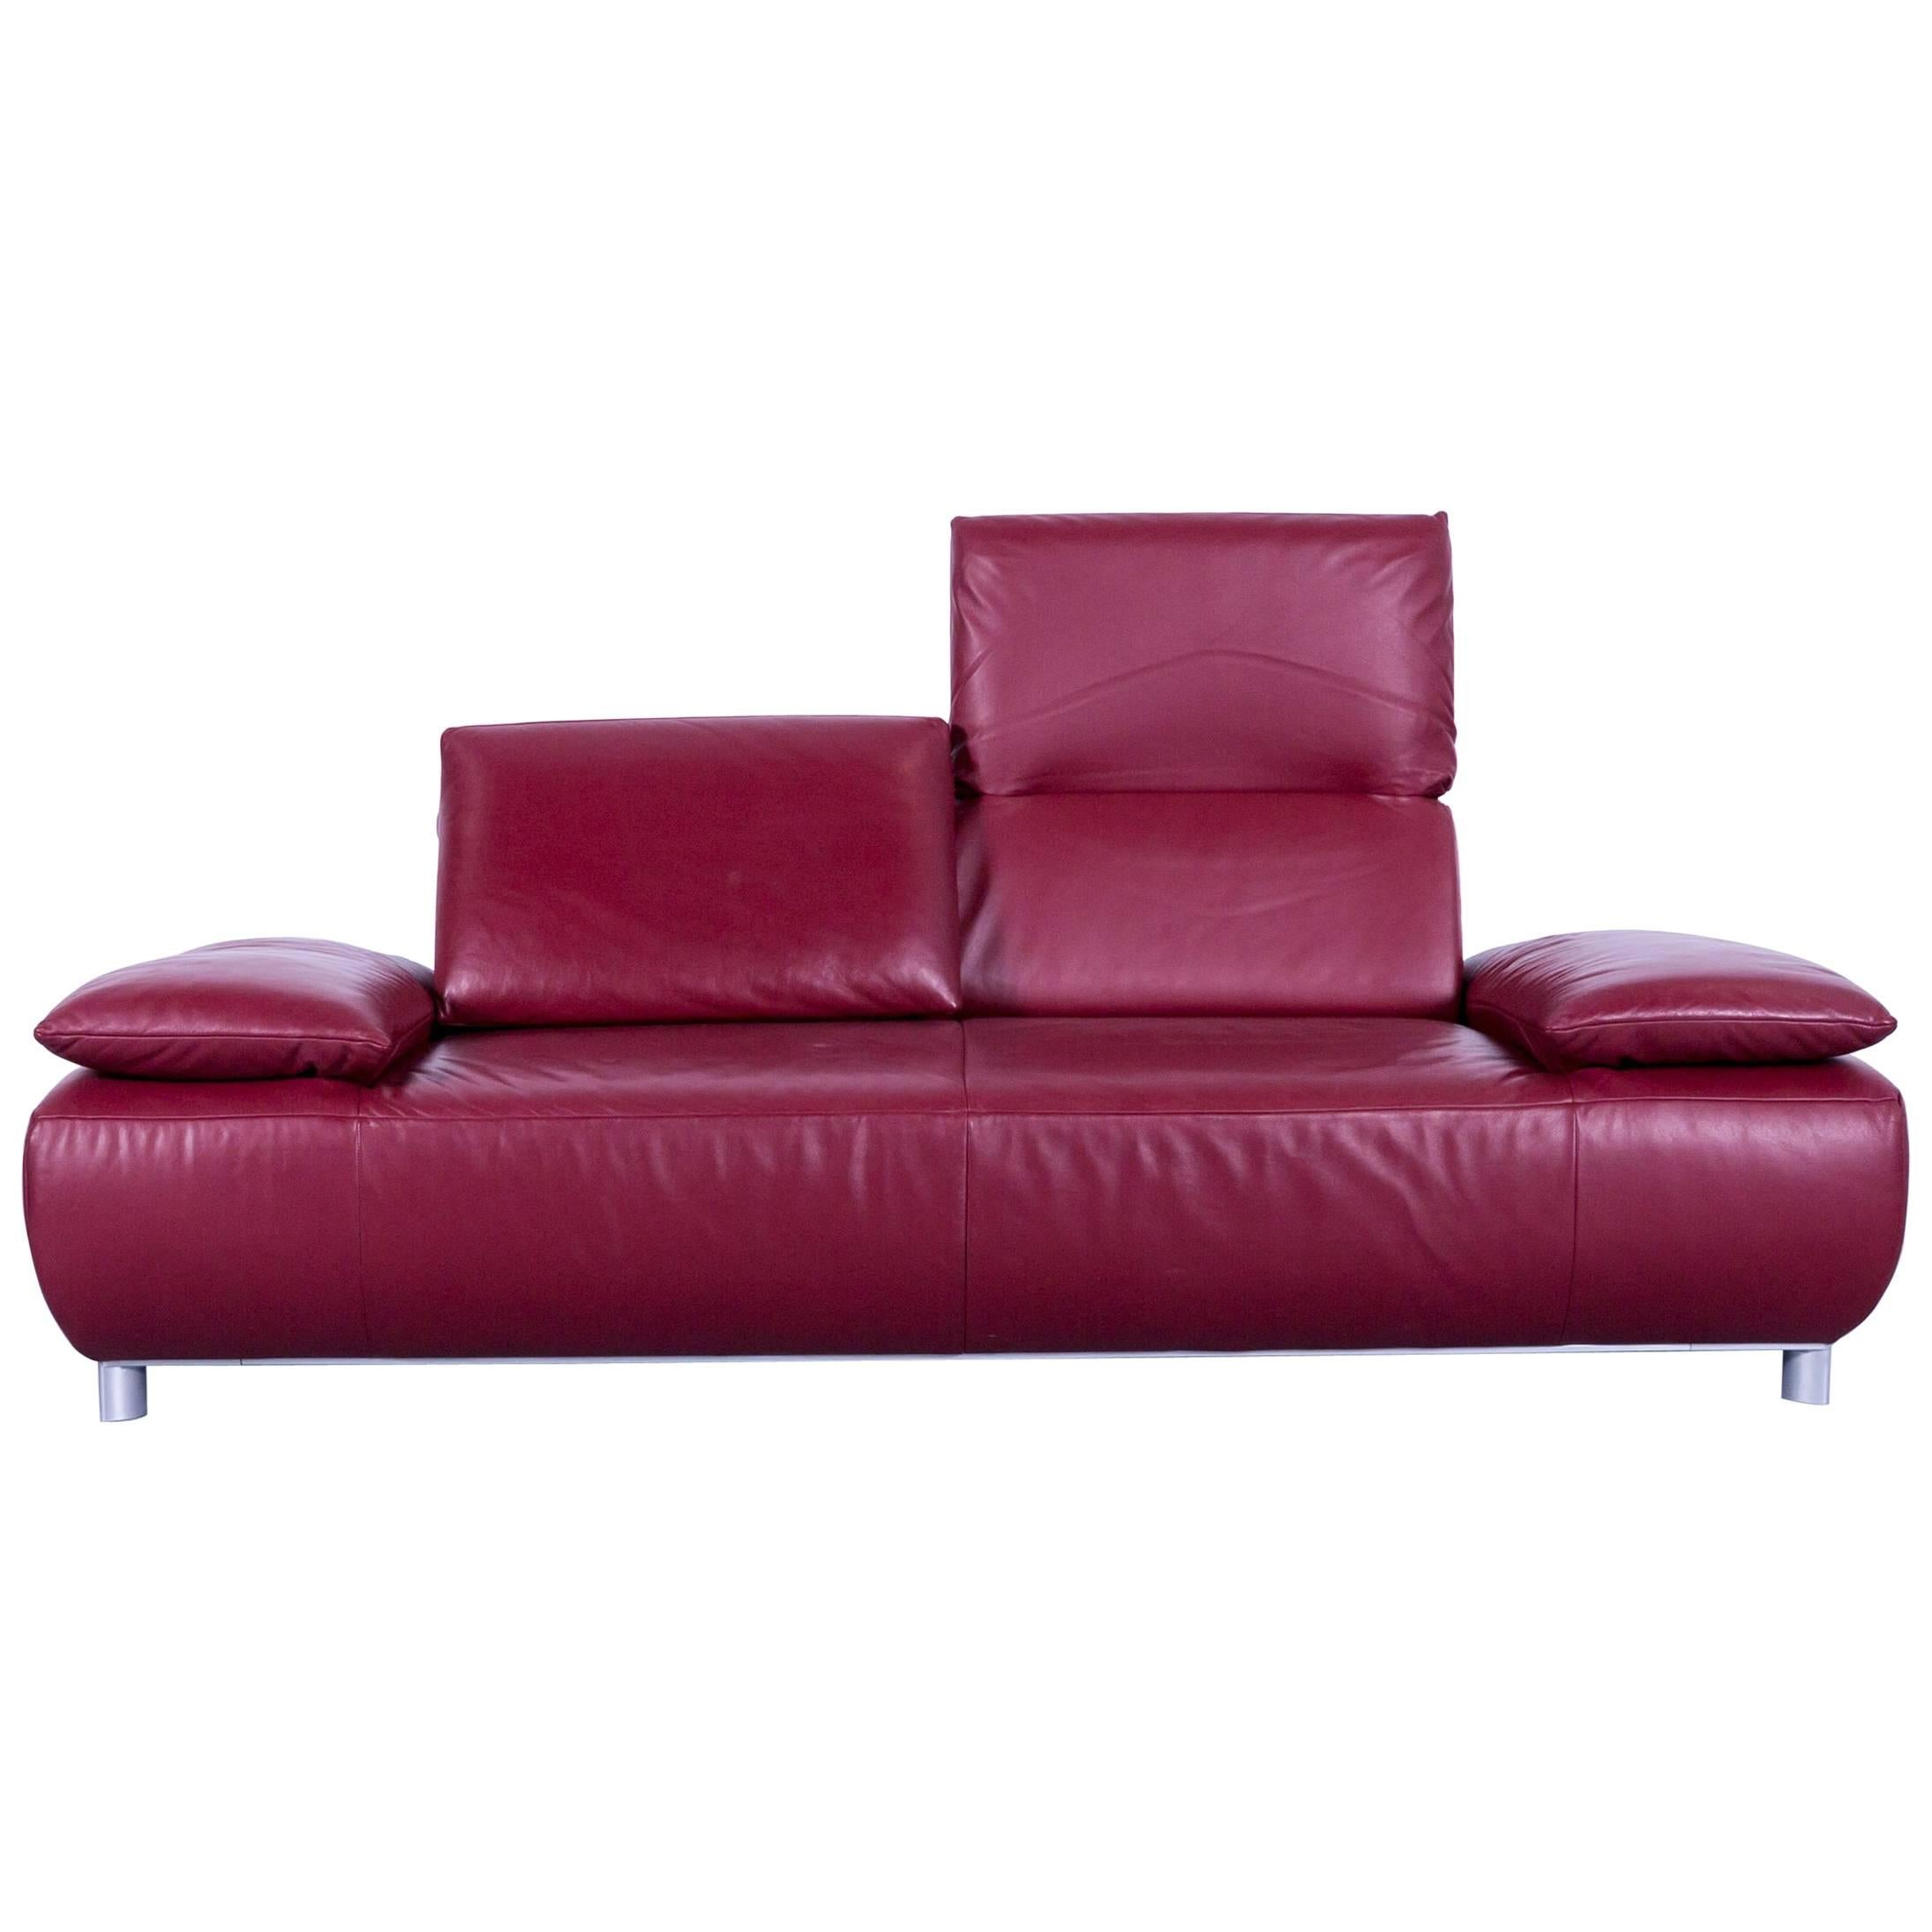 Koinor Volare Designer Sofa Leather Red Three Seat Couch, Germany